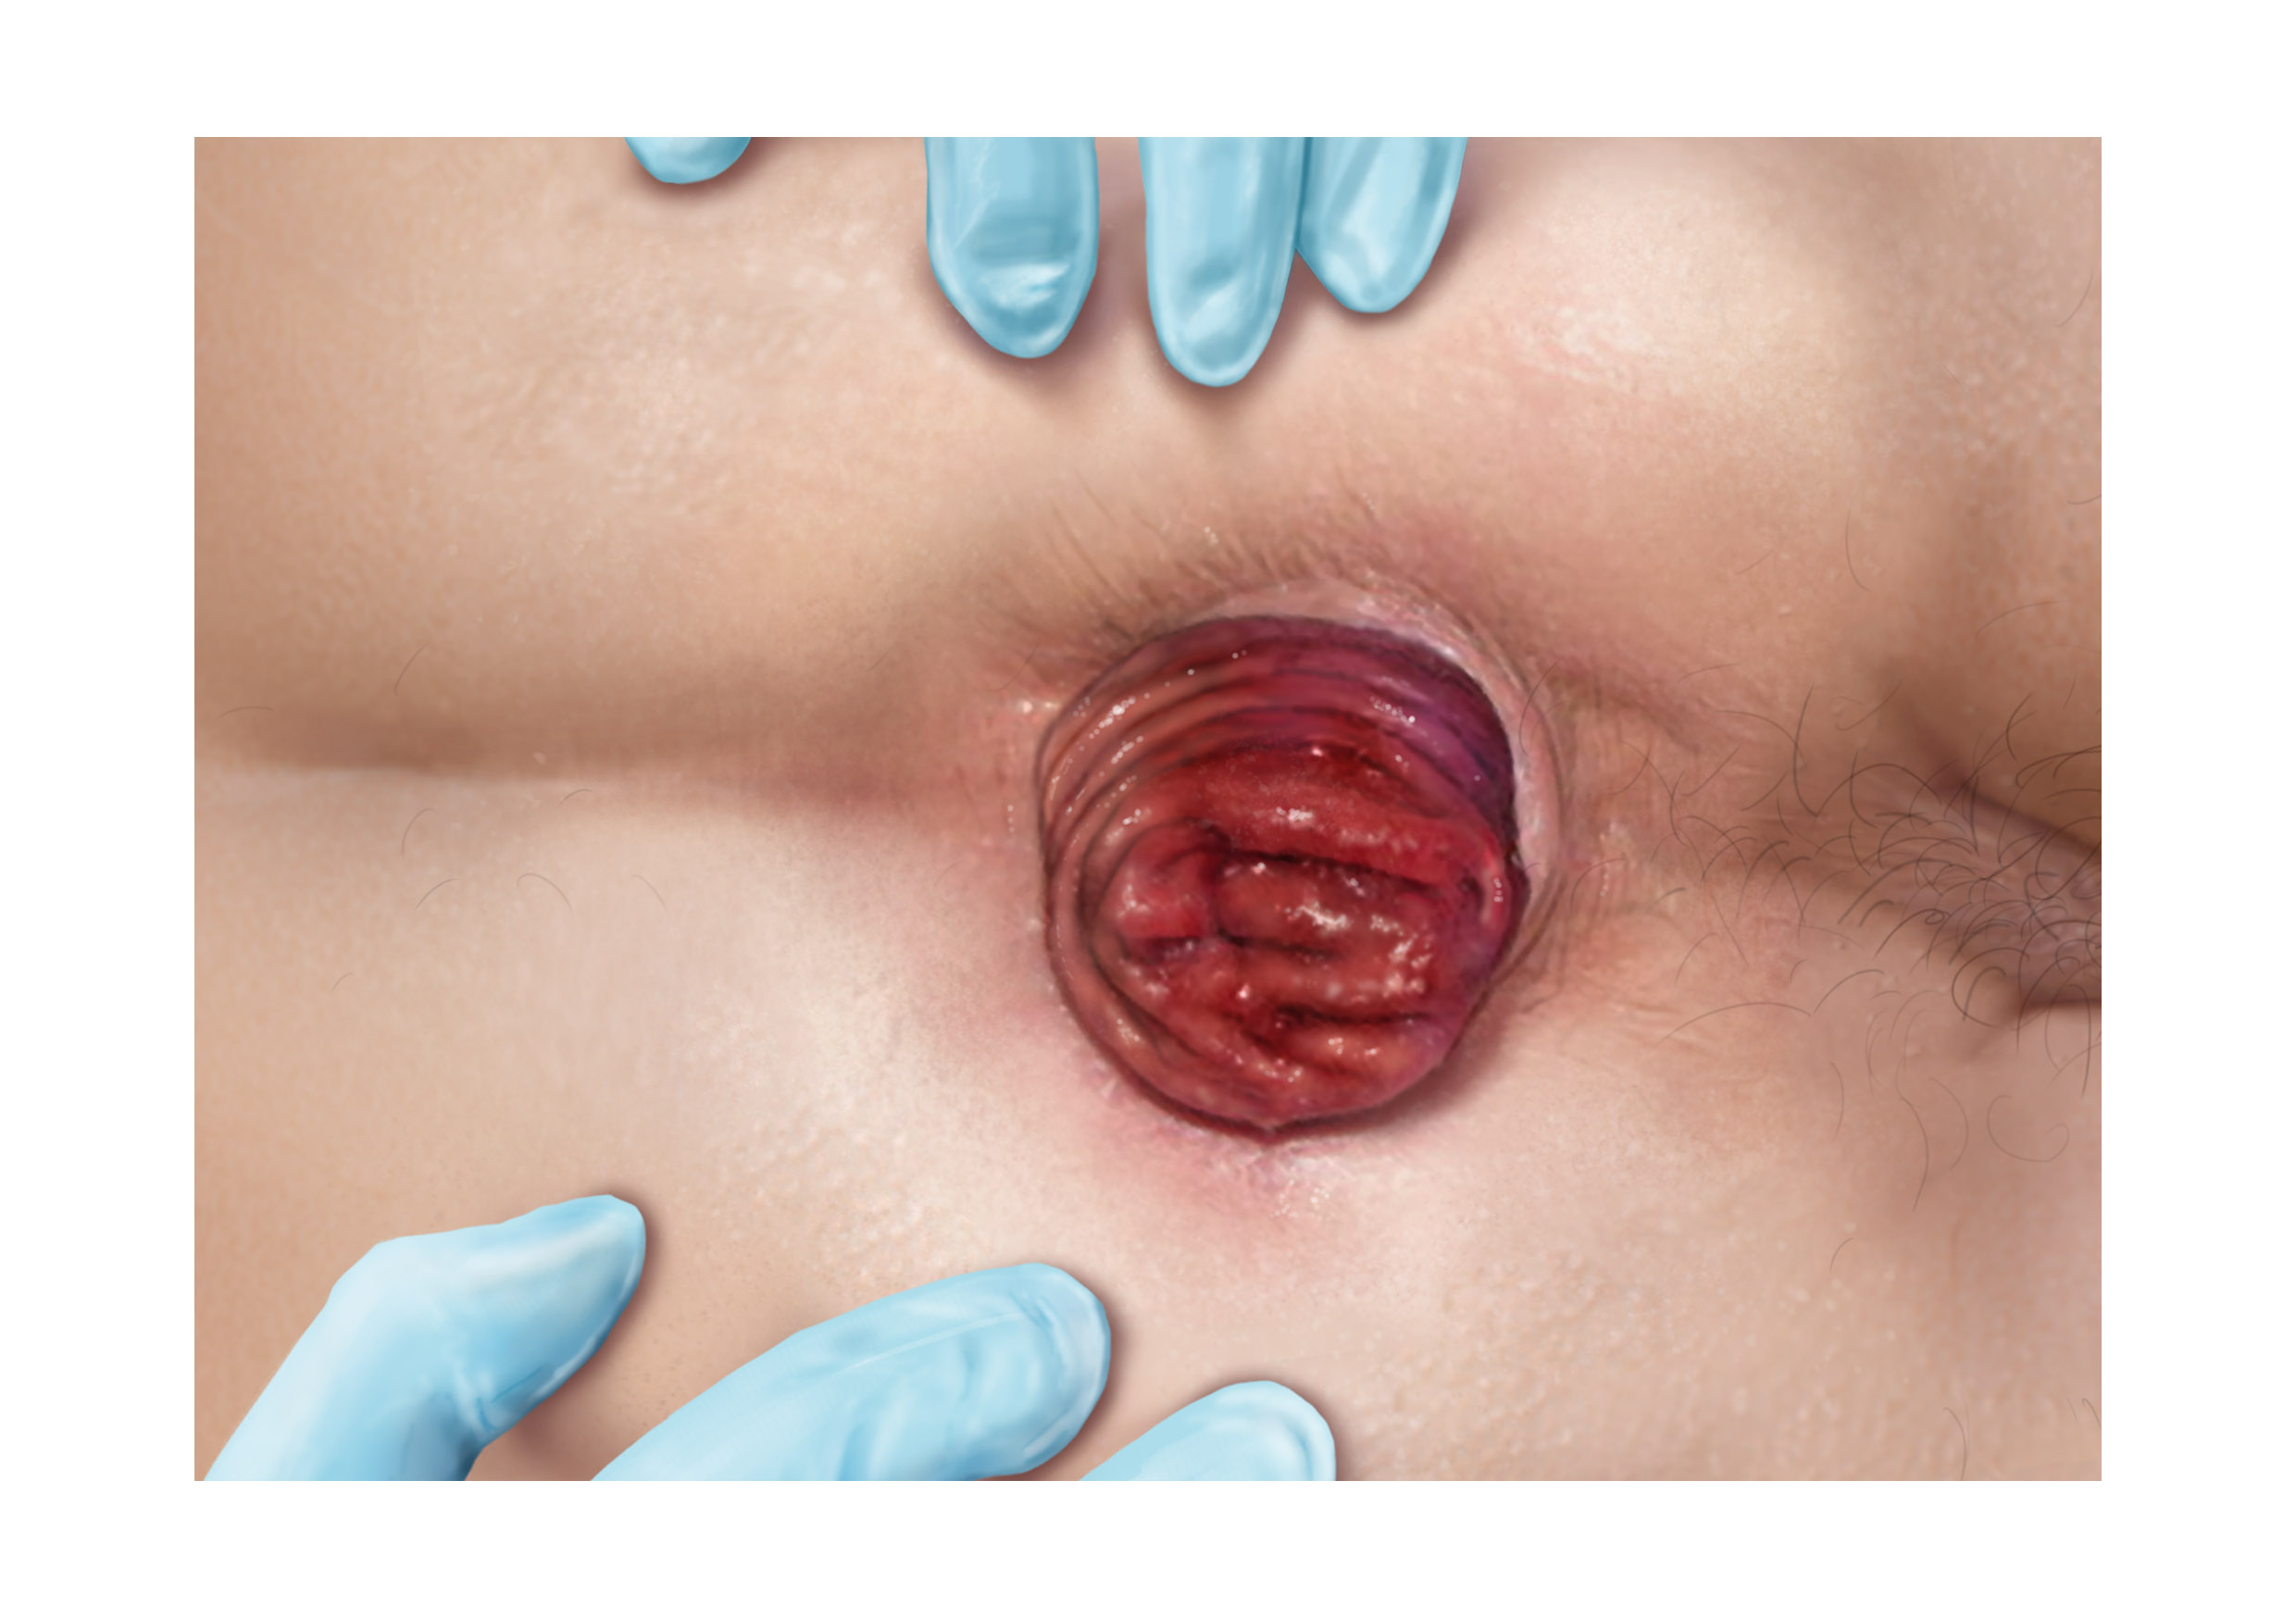 Illustrations of various diseases which can be found in rectal examinations - prolapse